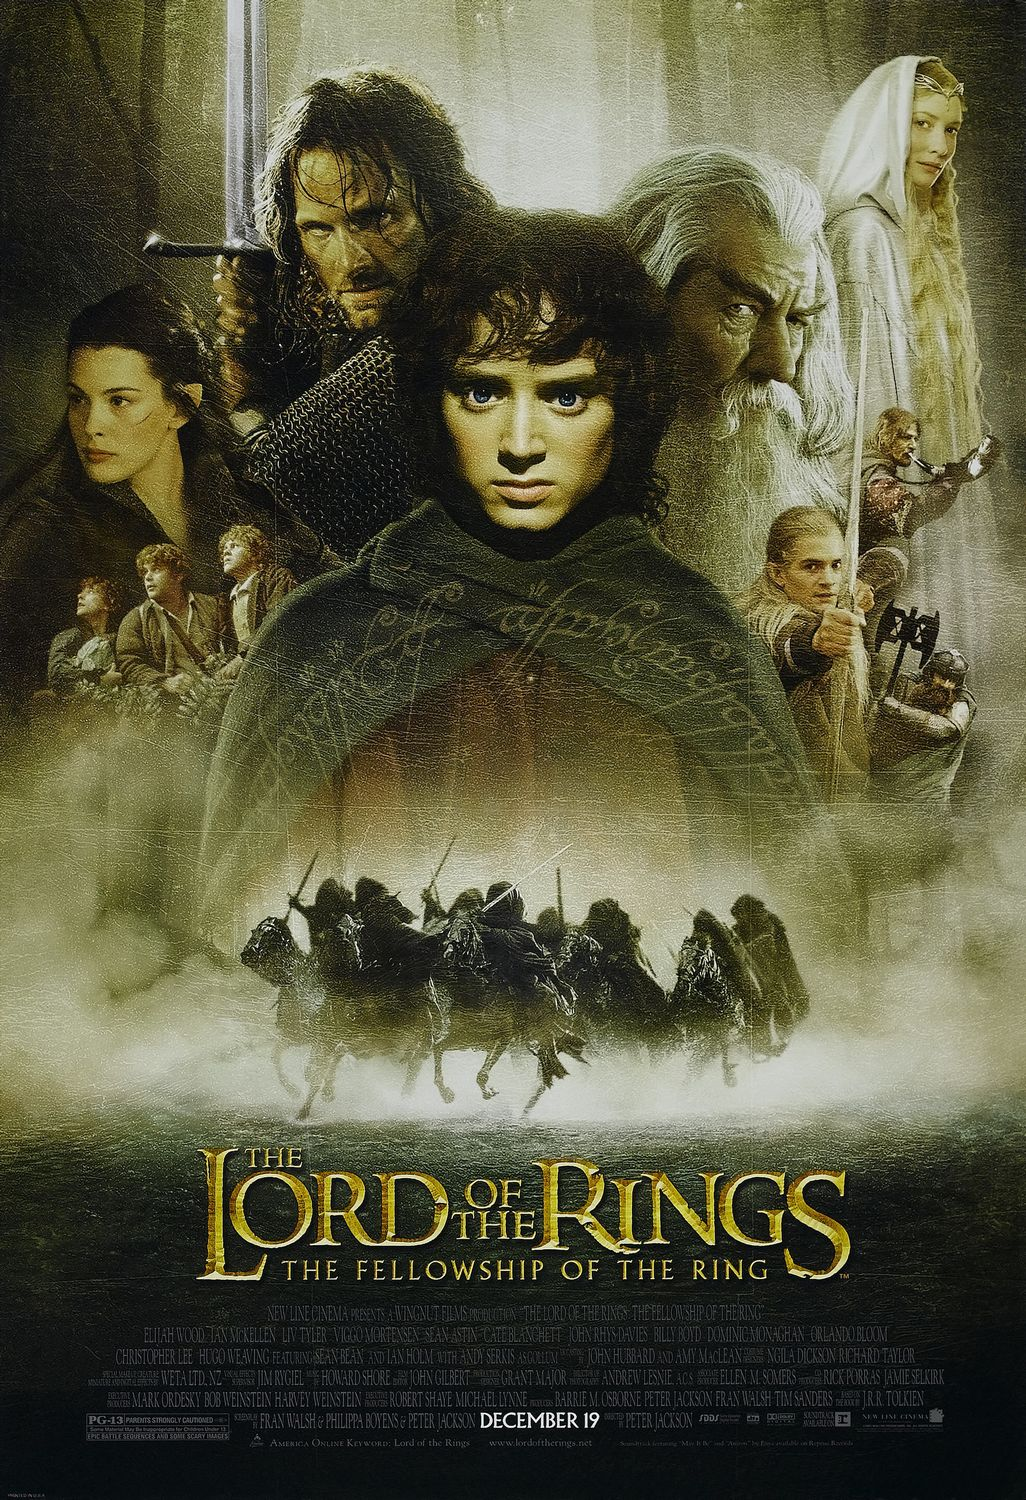 The Lord of the Rings The Fellowship of the Ring (2001) theatrical poster